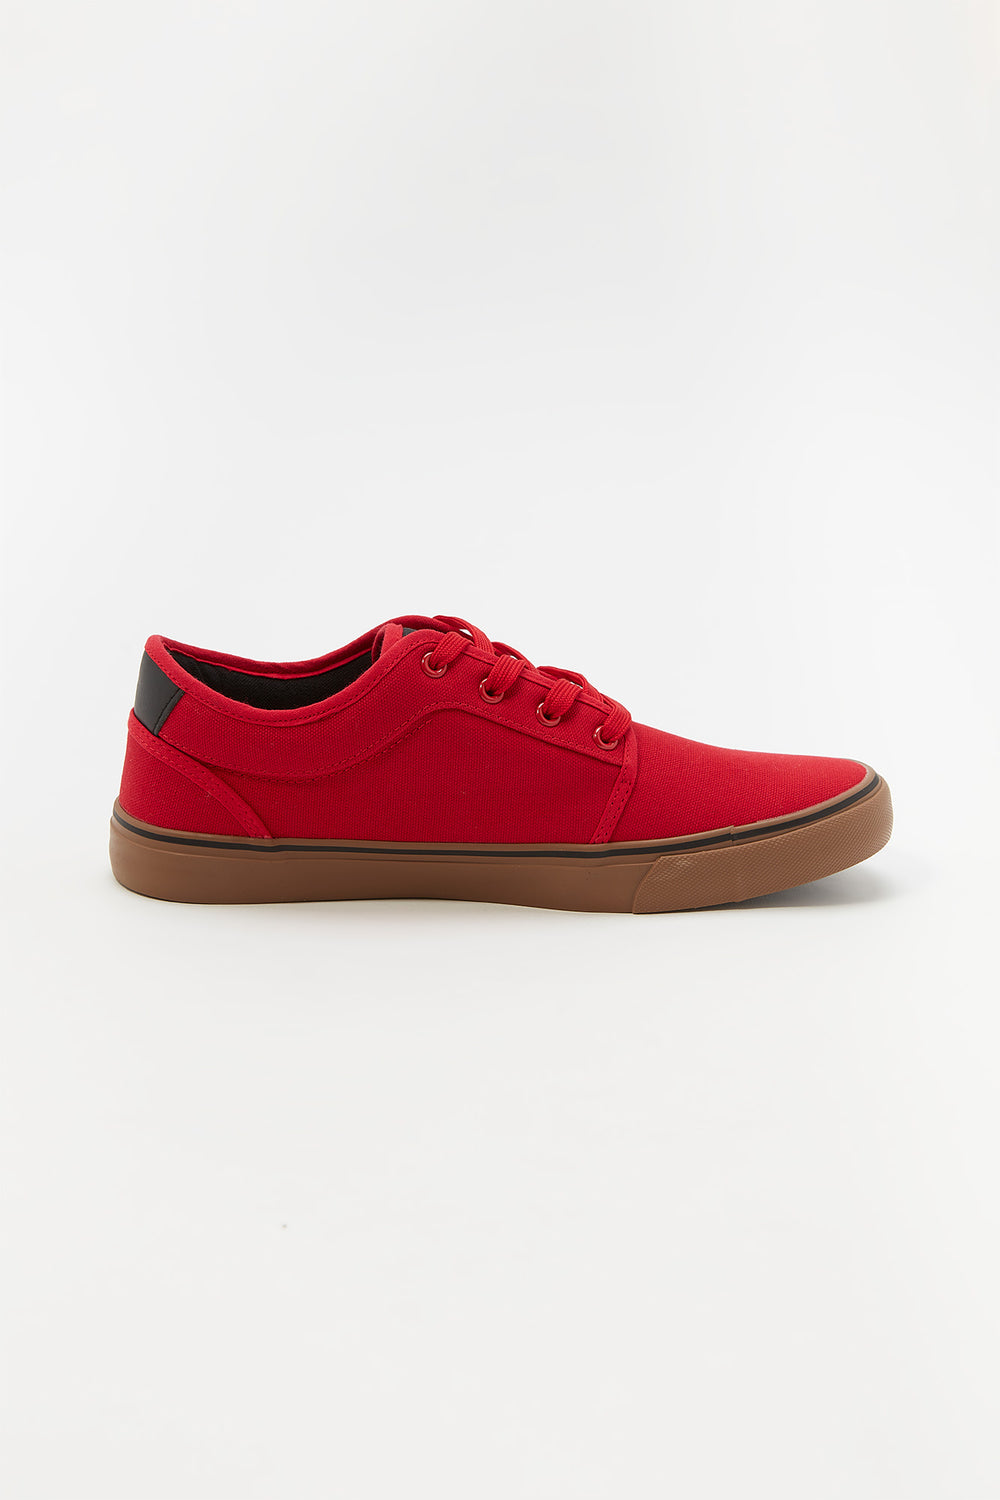 Zoo York Mens Canvas Skate Shoes Red